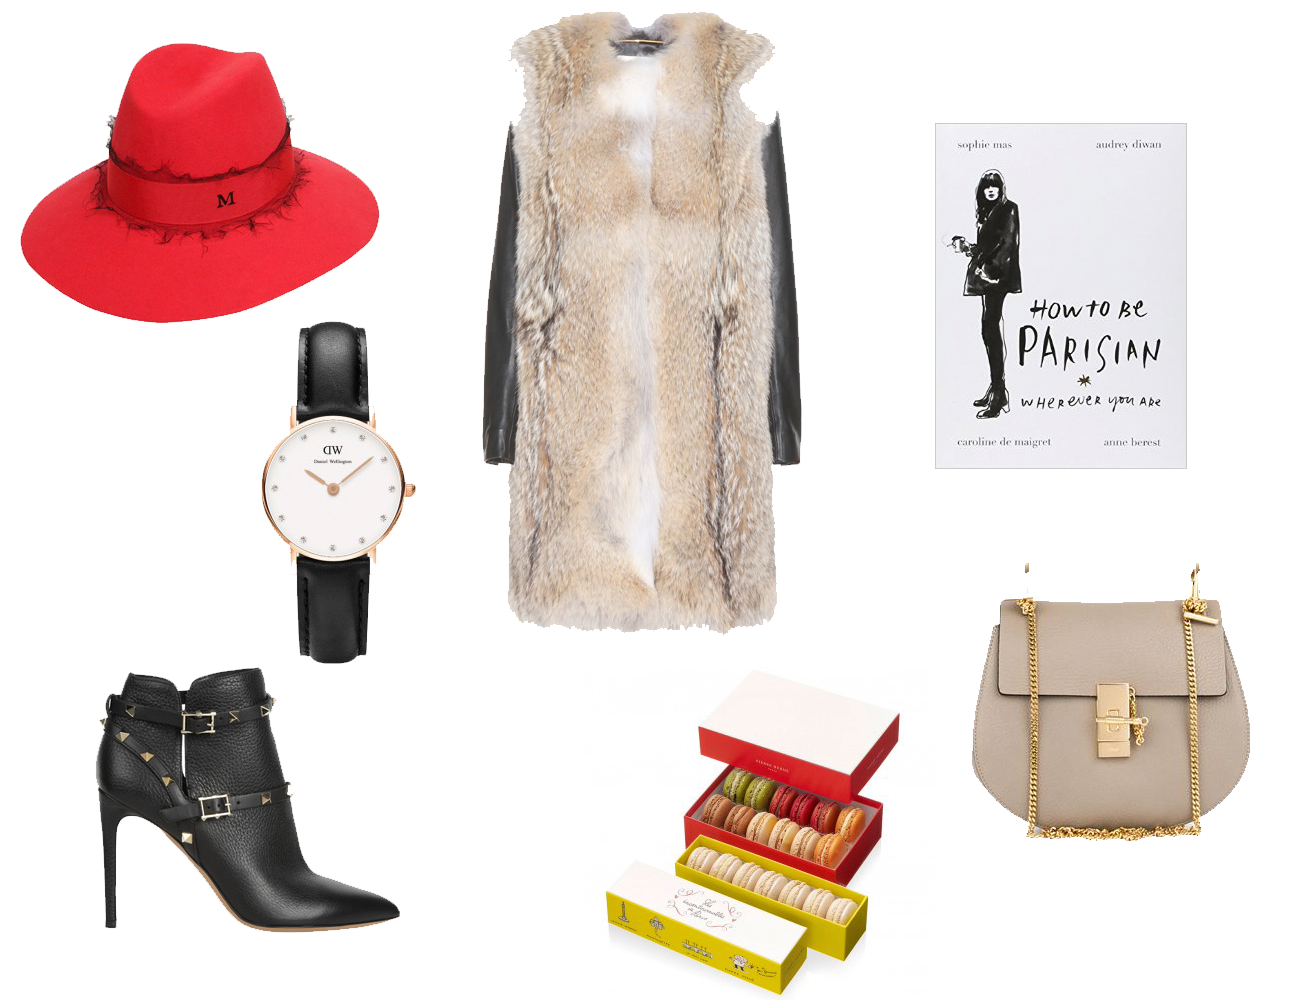 saint laurent, fur and leather, maison michel, valentino, daniel wellington, chloé, drew bag, how to be a parisian, pierre hermé, macaroons,wish list, christmas present